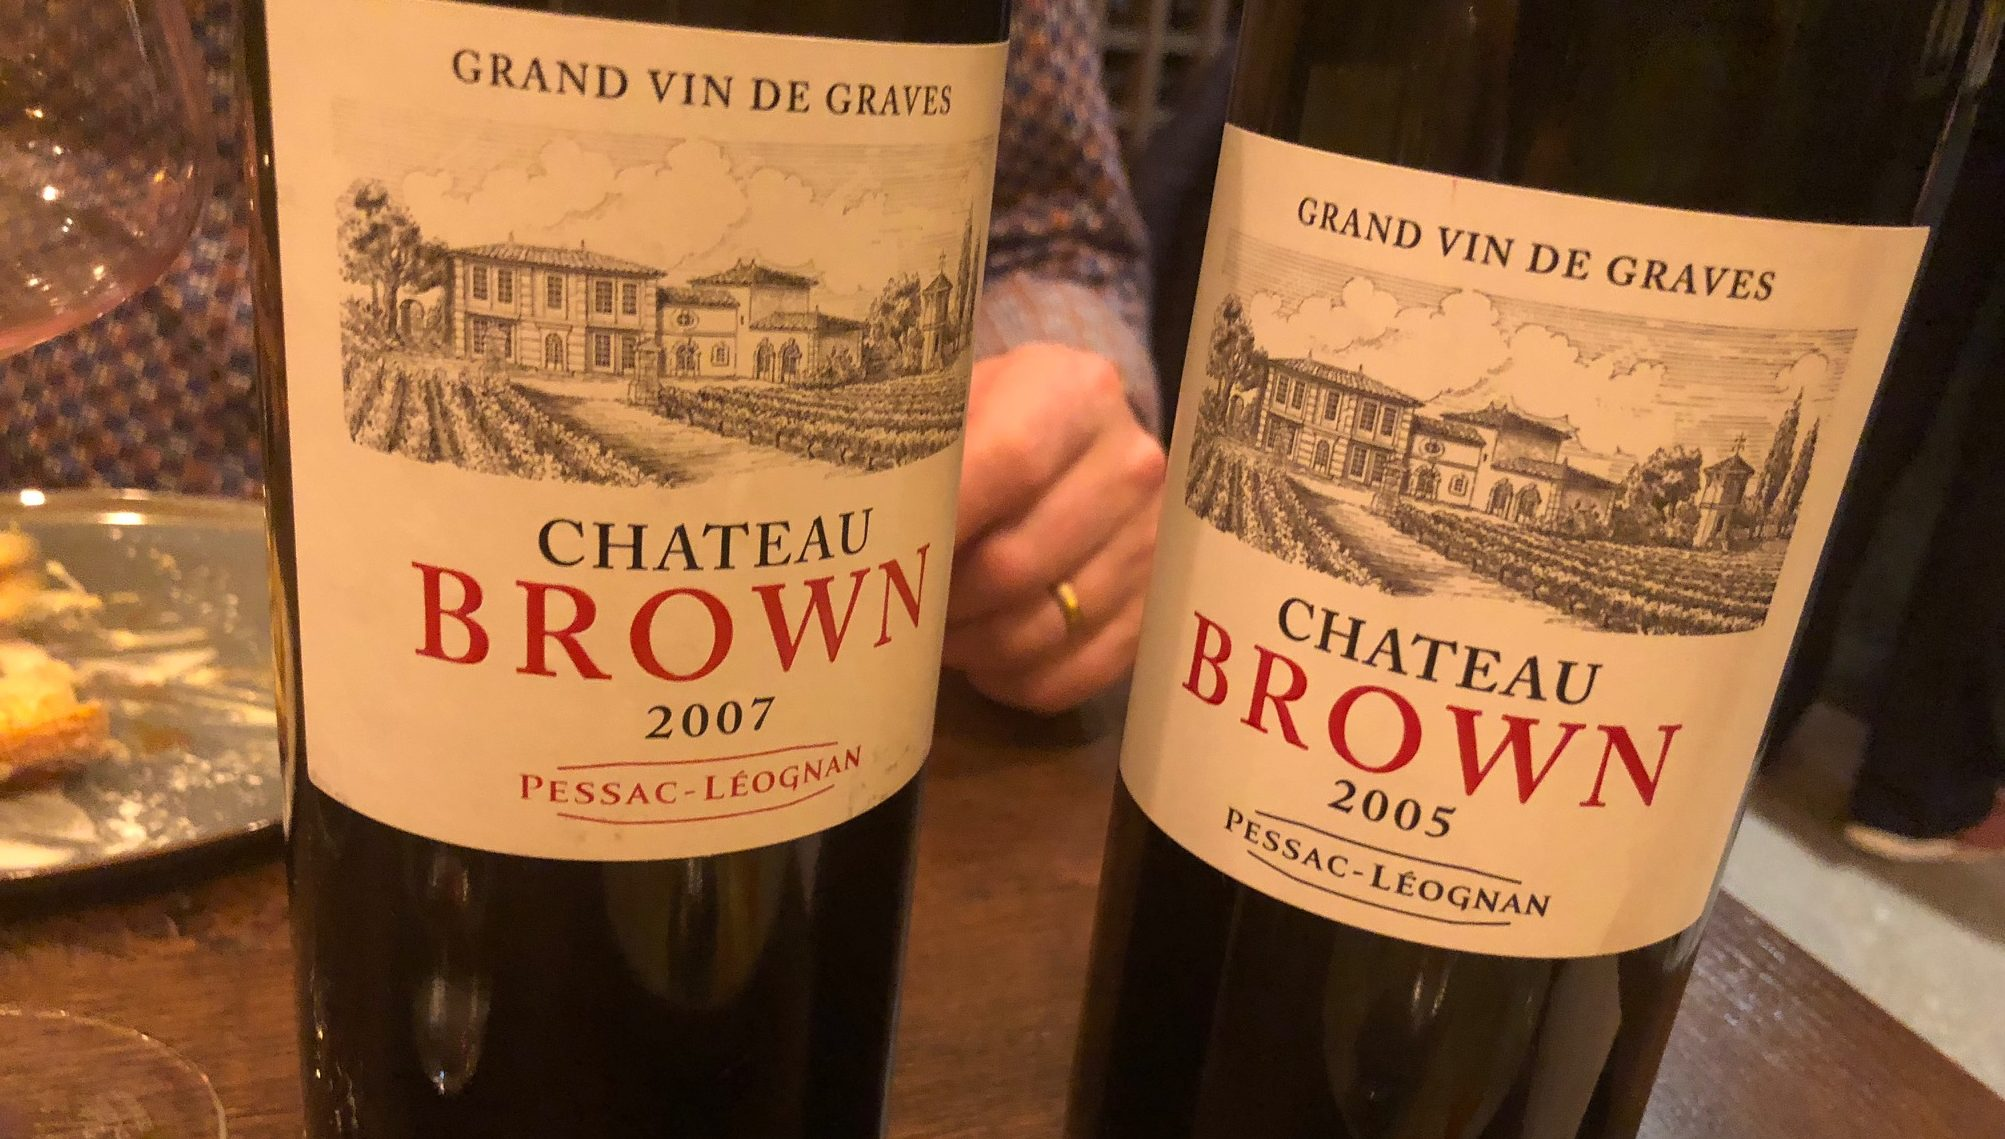 Chateau Brown